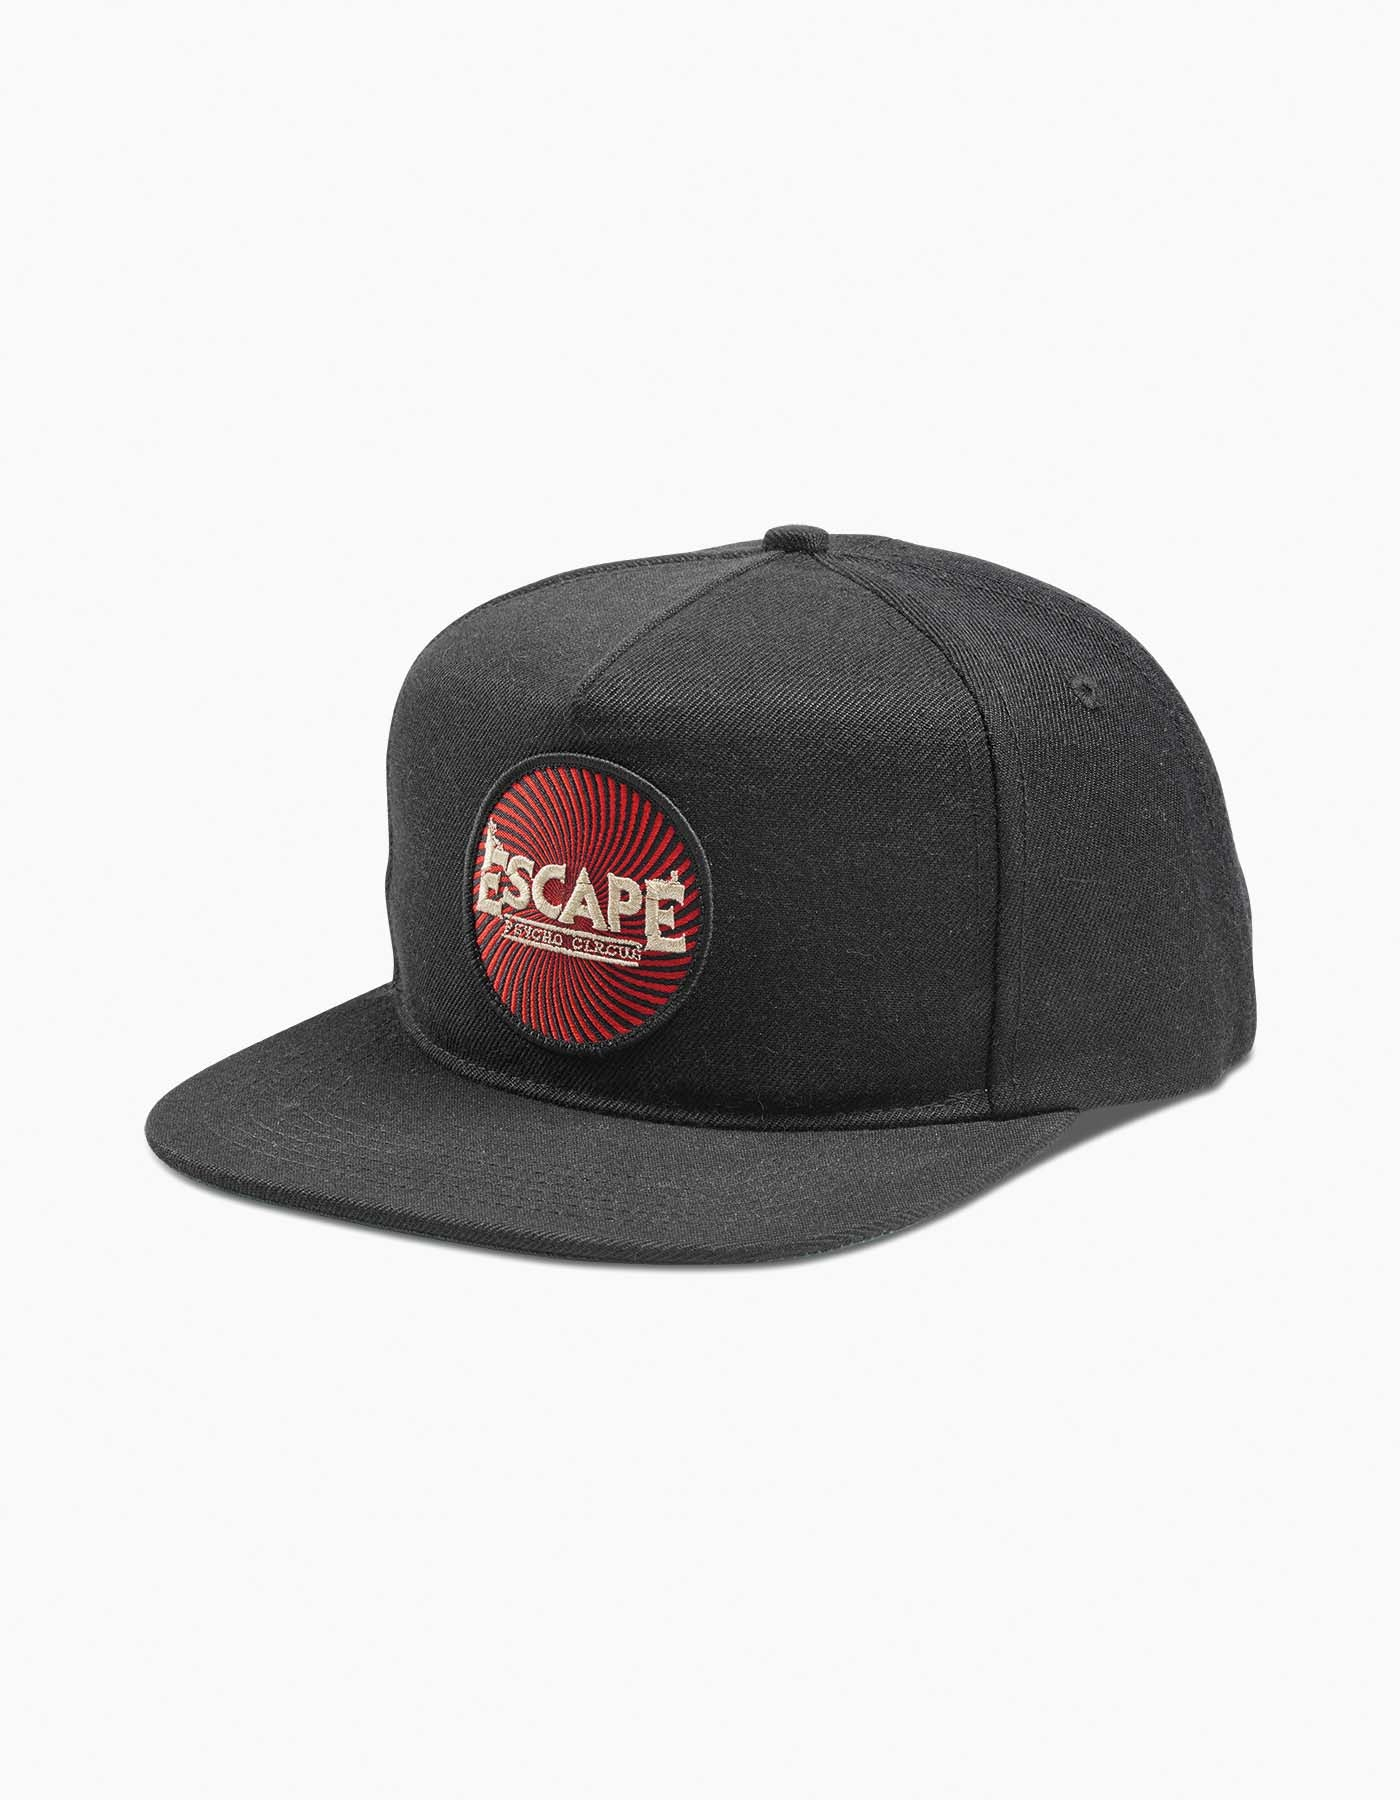 Escape Patch Snapback